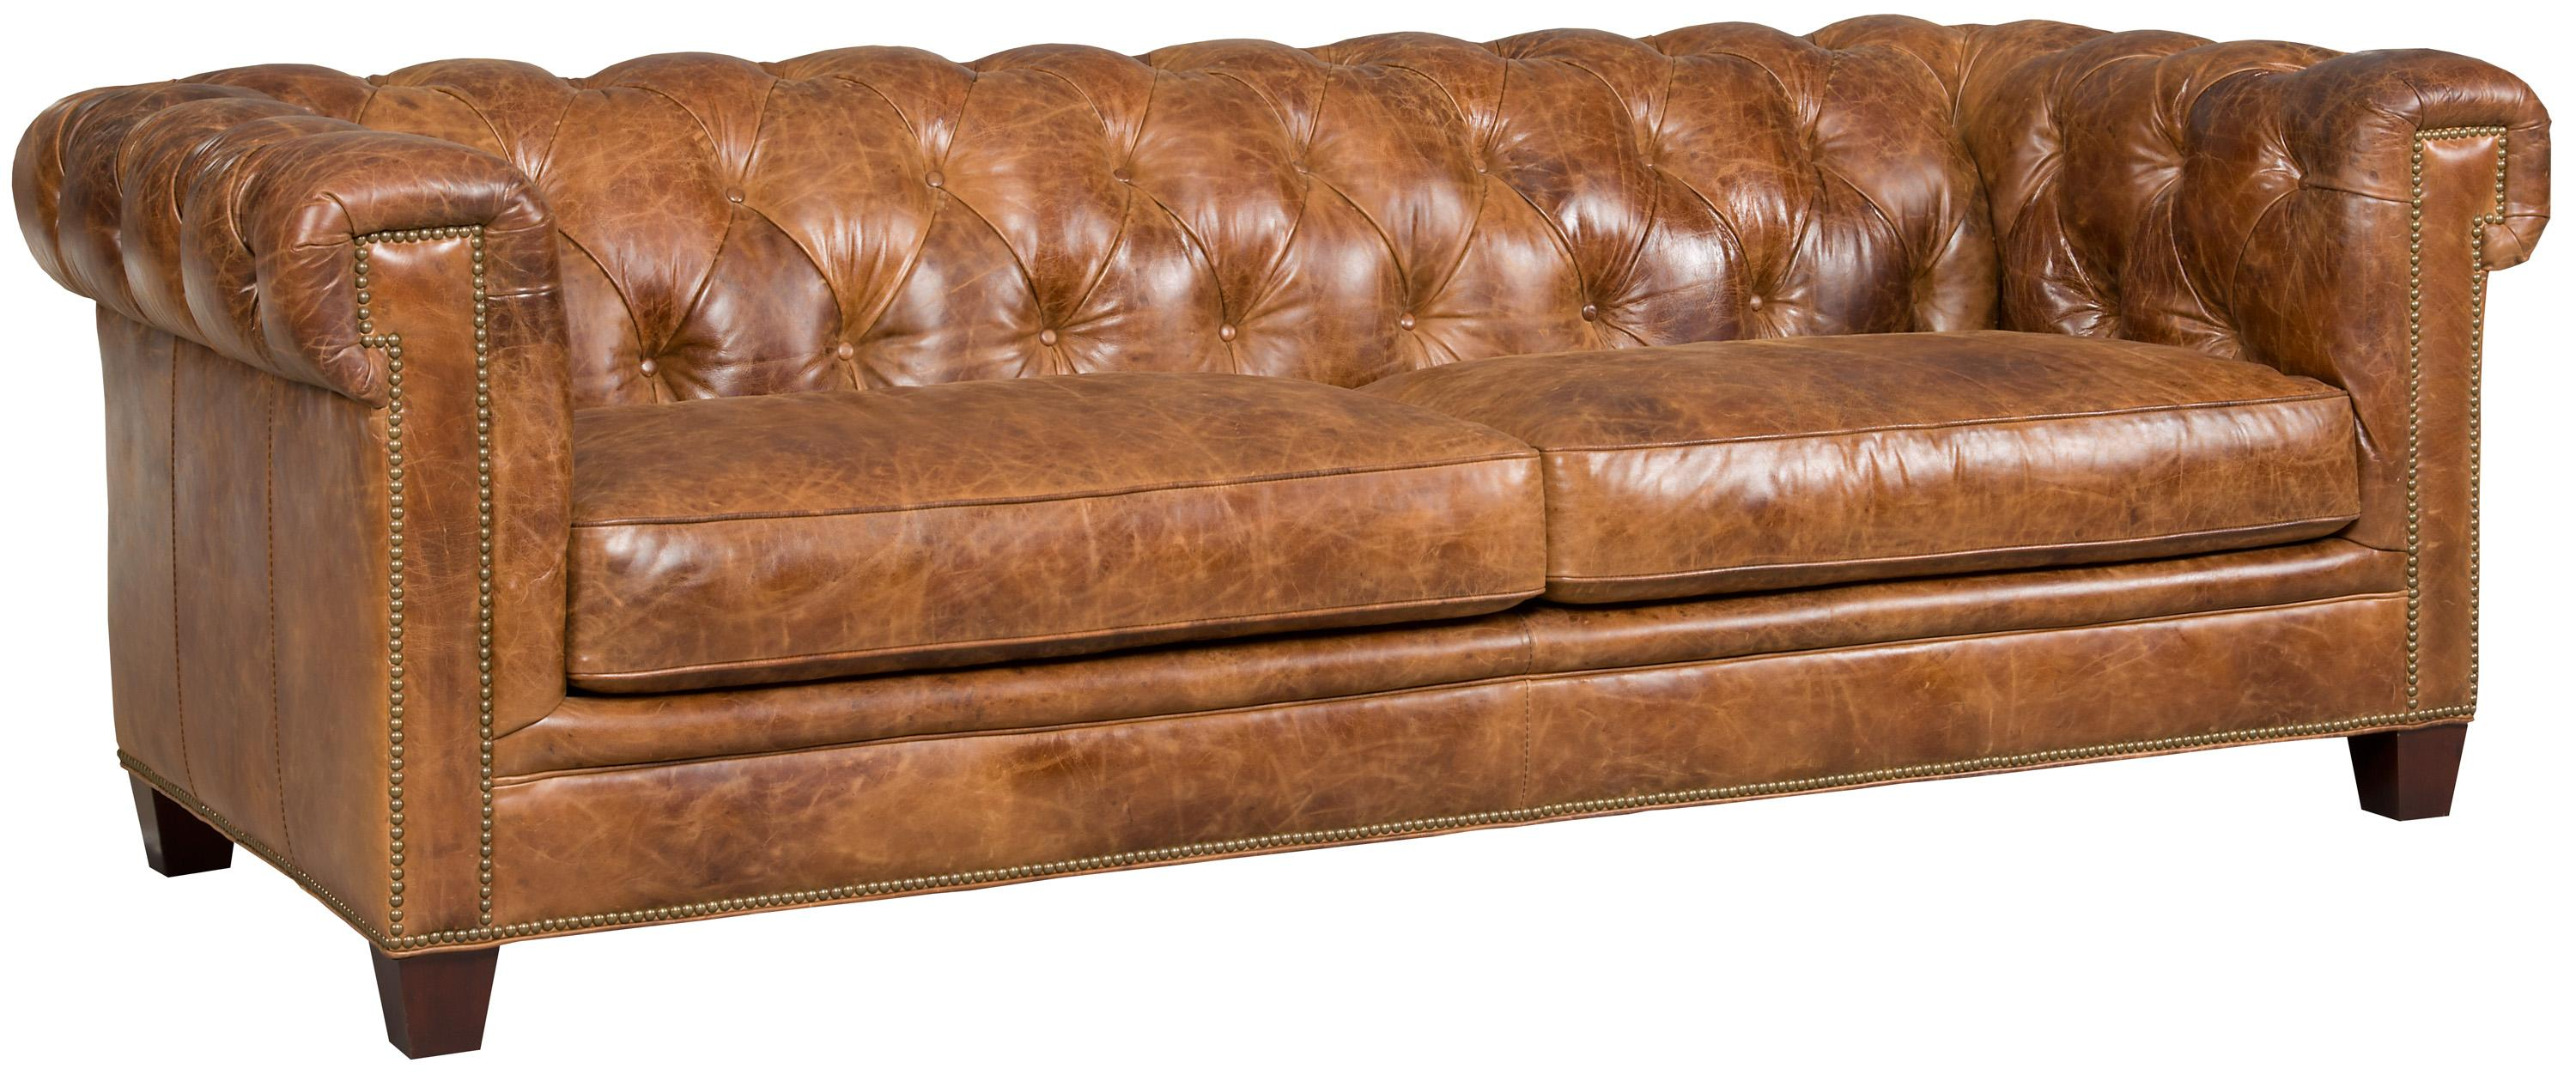 Charmant Transitional Chesterfield Sofa With Track Arms And Nailheads